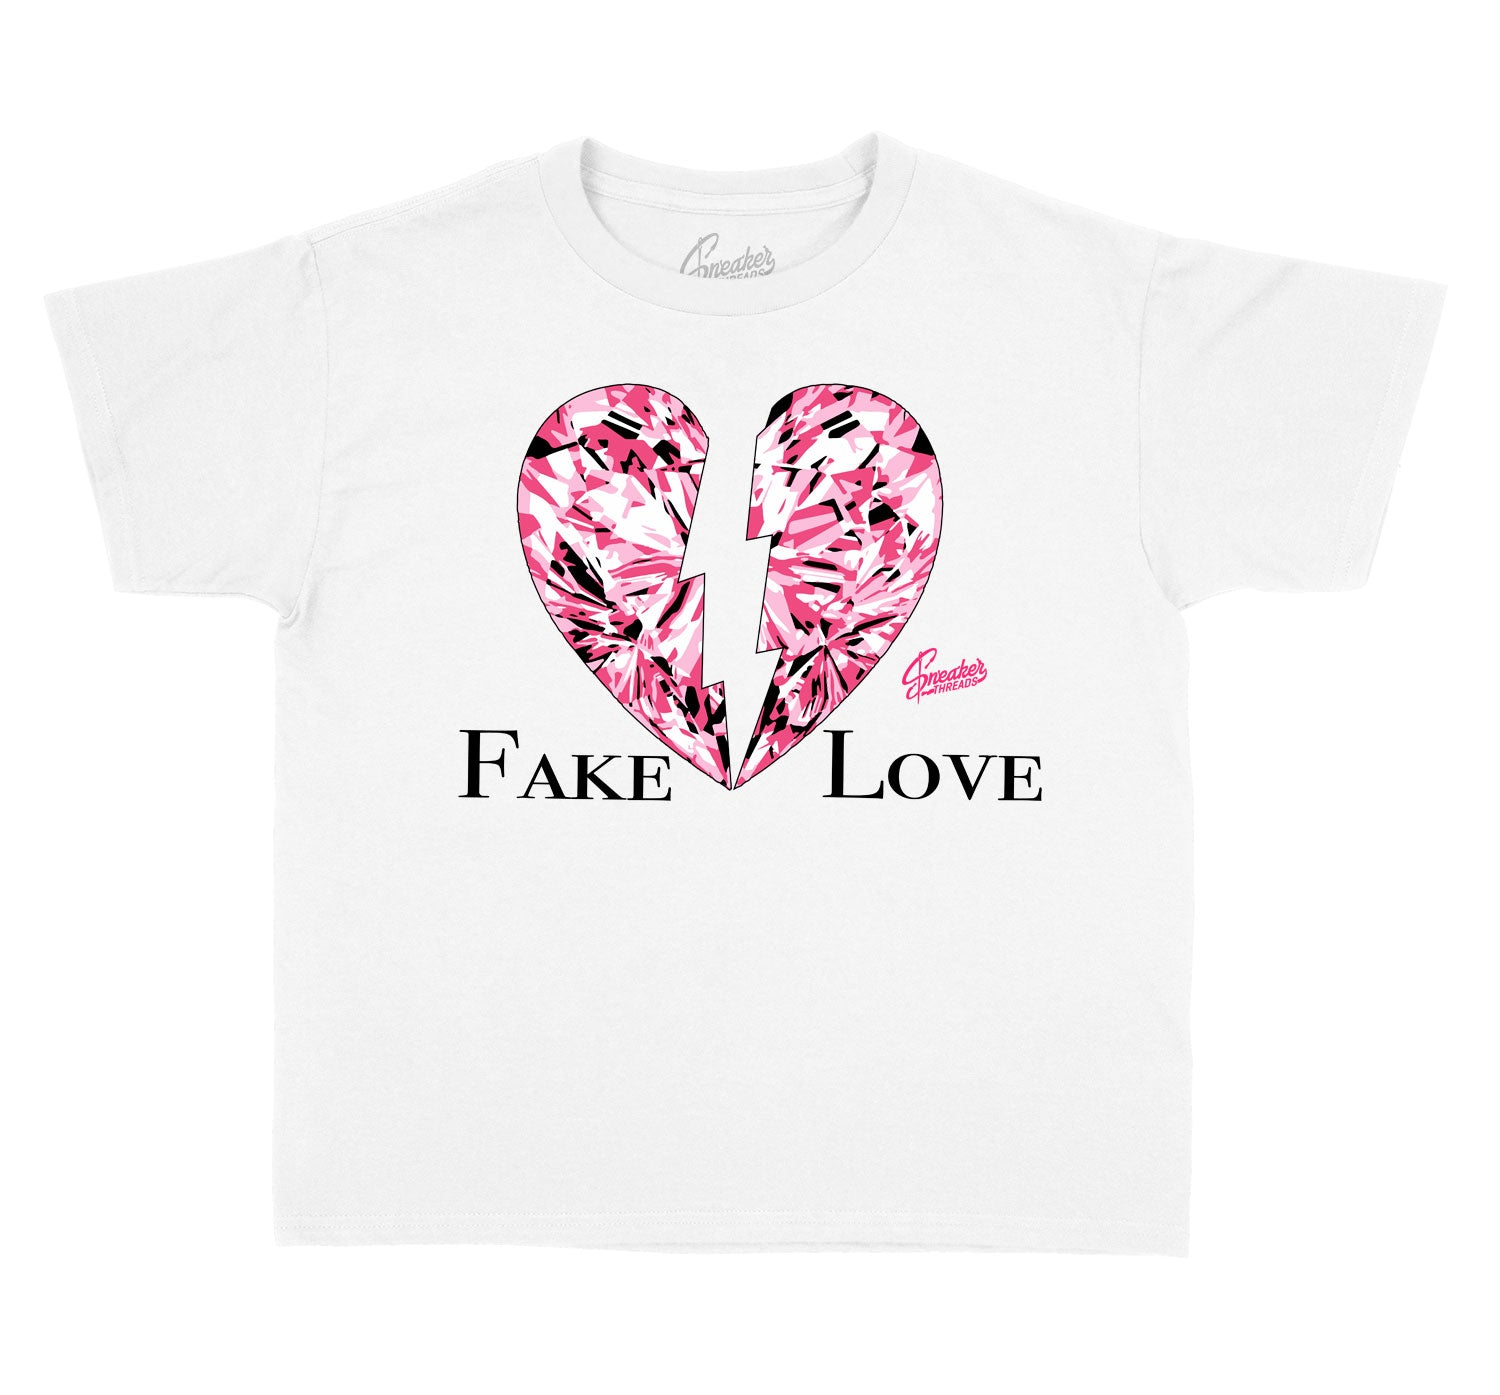 Kids Ice Cream 12 Shirt - Fake Love - White